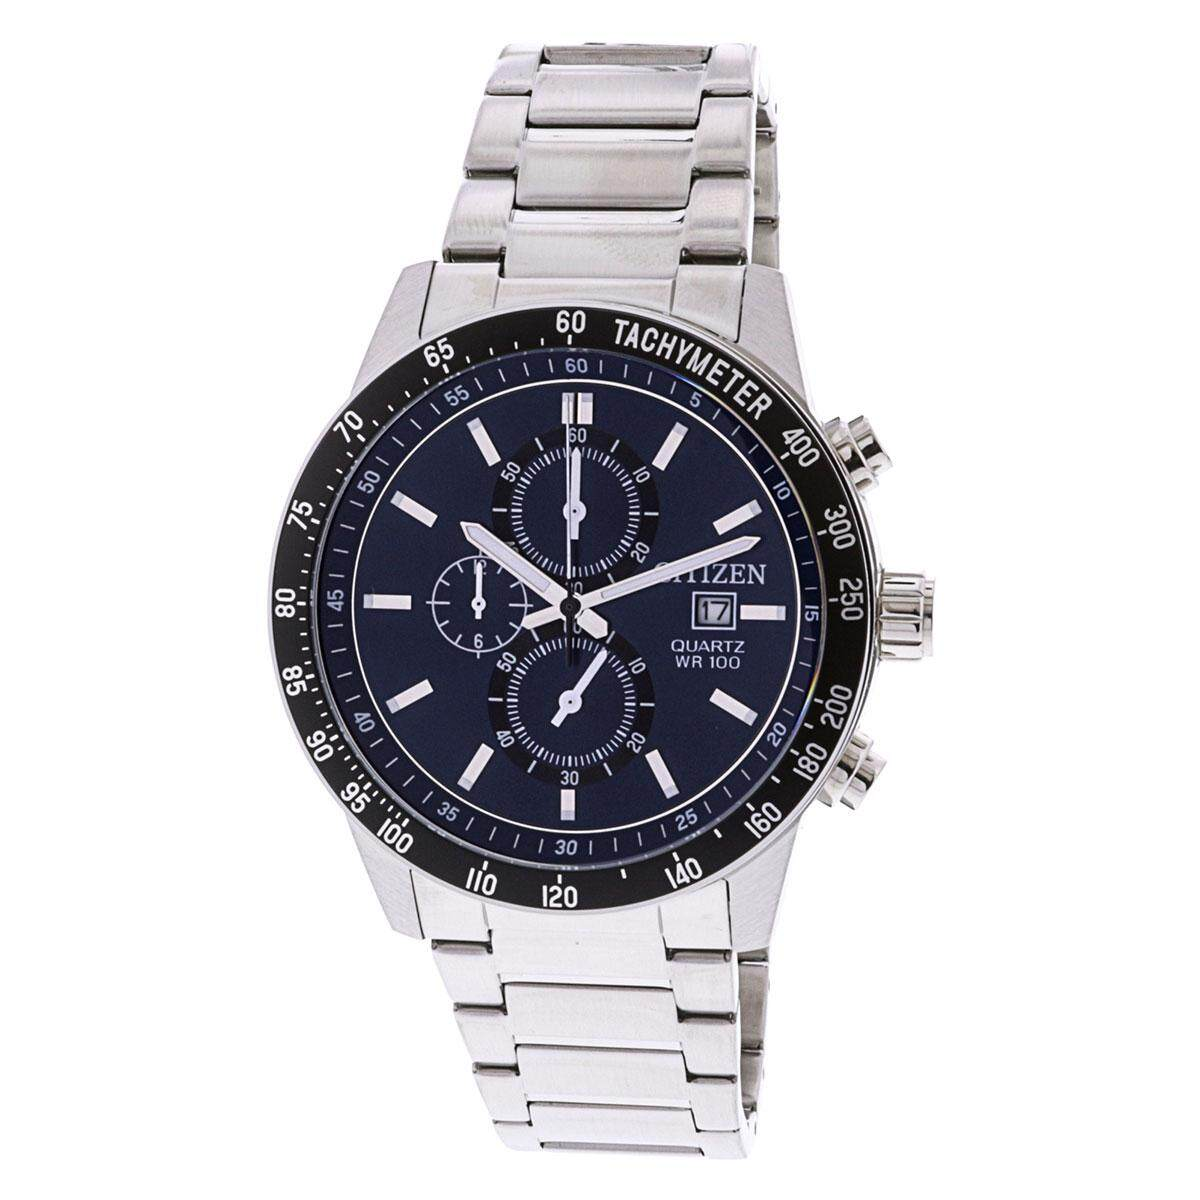 Fitur Citizen Mens Stainless Steel Watch Aw1520 51l Dan Harga Nh8388 81e Chronograph Silver Case Bracelet An3600 59l